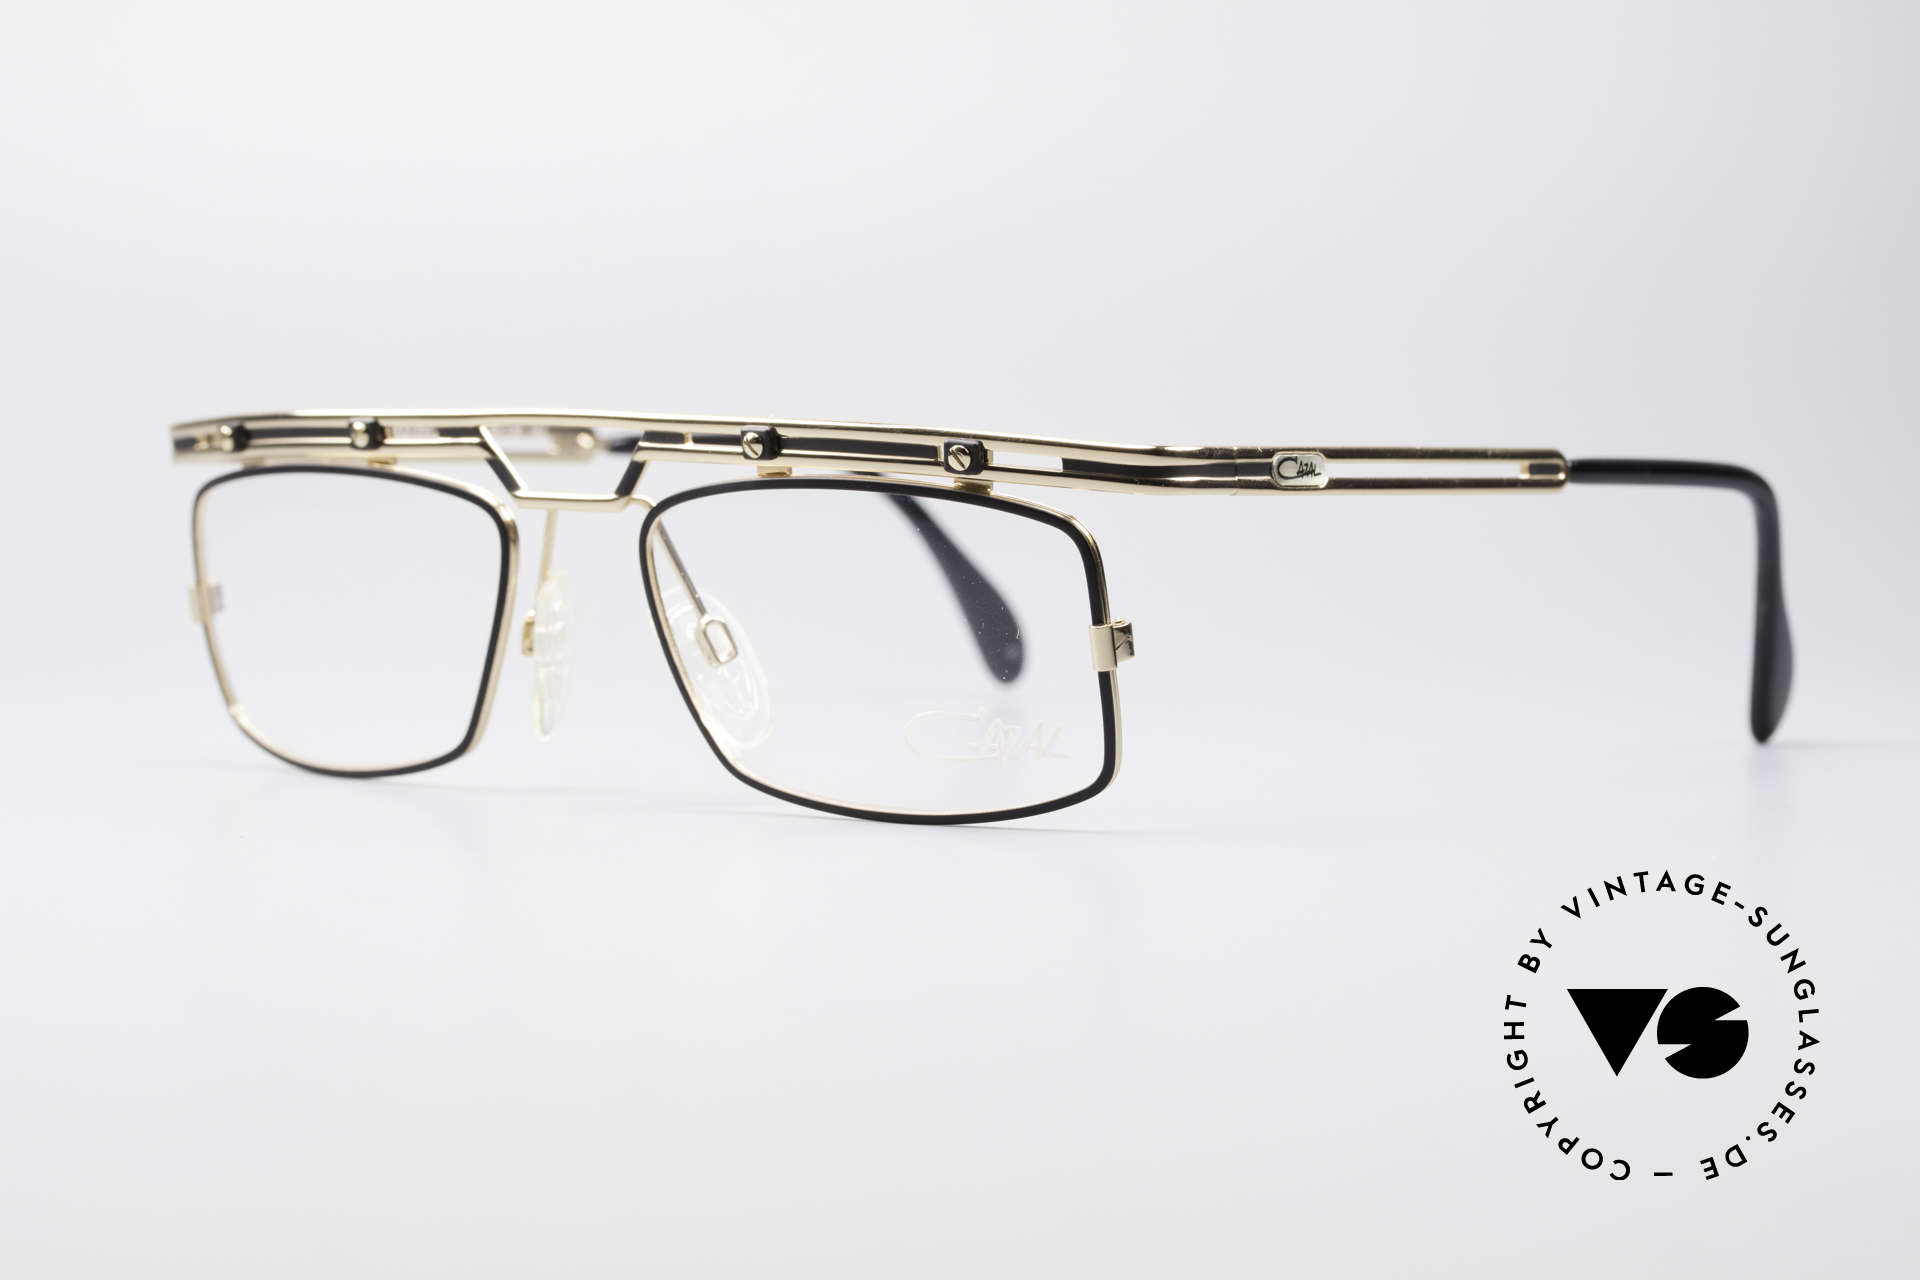 Cazal 975 Vintage 90's Designer Glasses, great metalwork and overall craftmanship; durable!, Made for Men